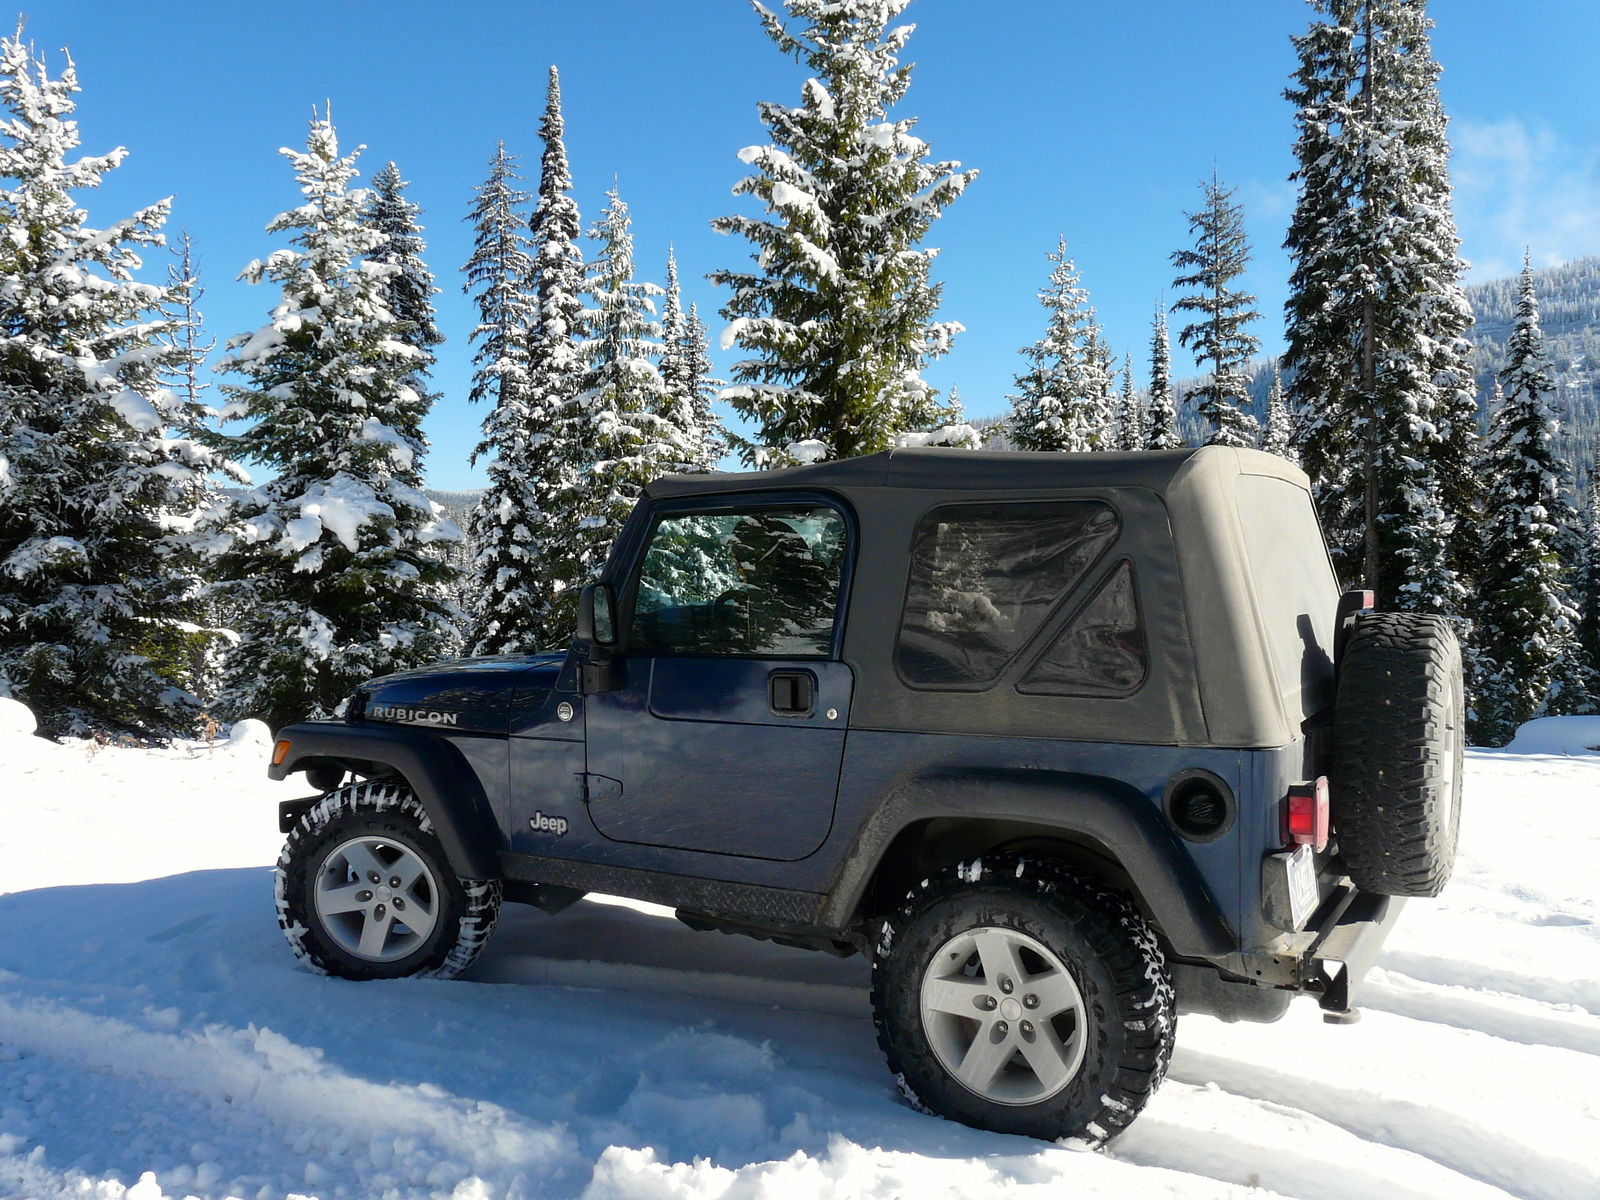 A jeep sits on a road in the snow surrounded by evergreens.